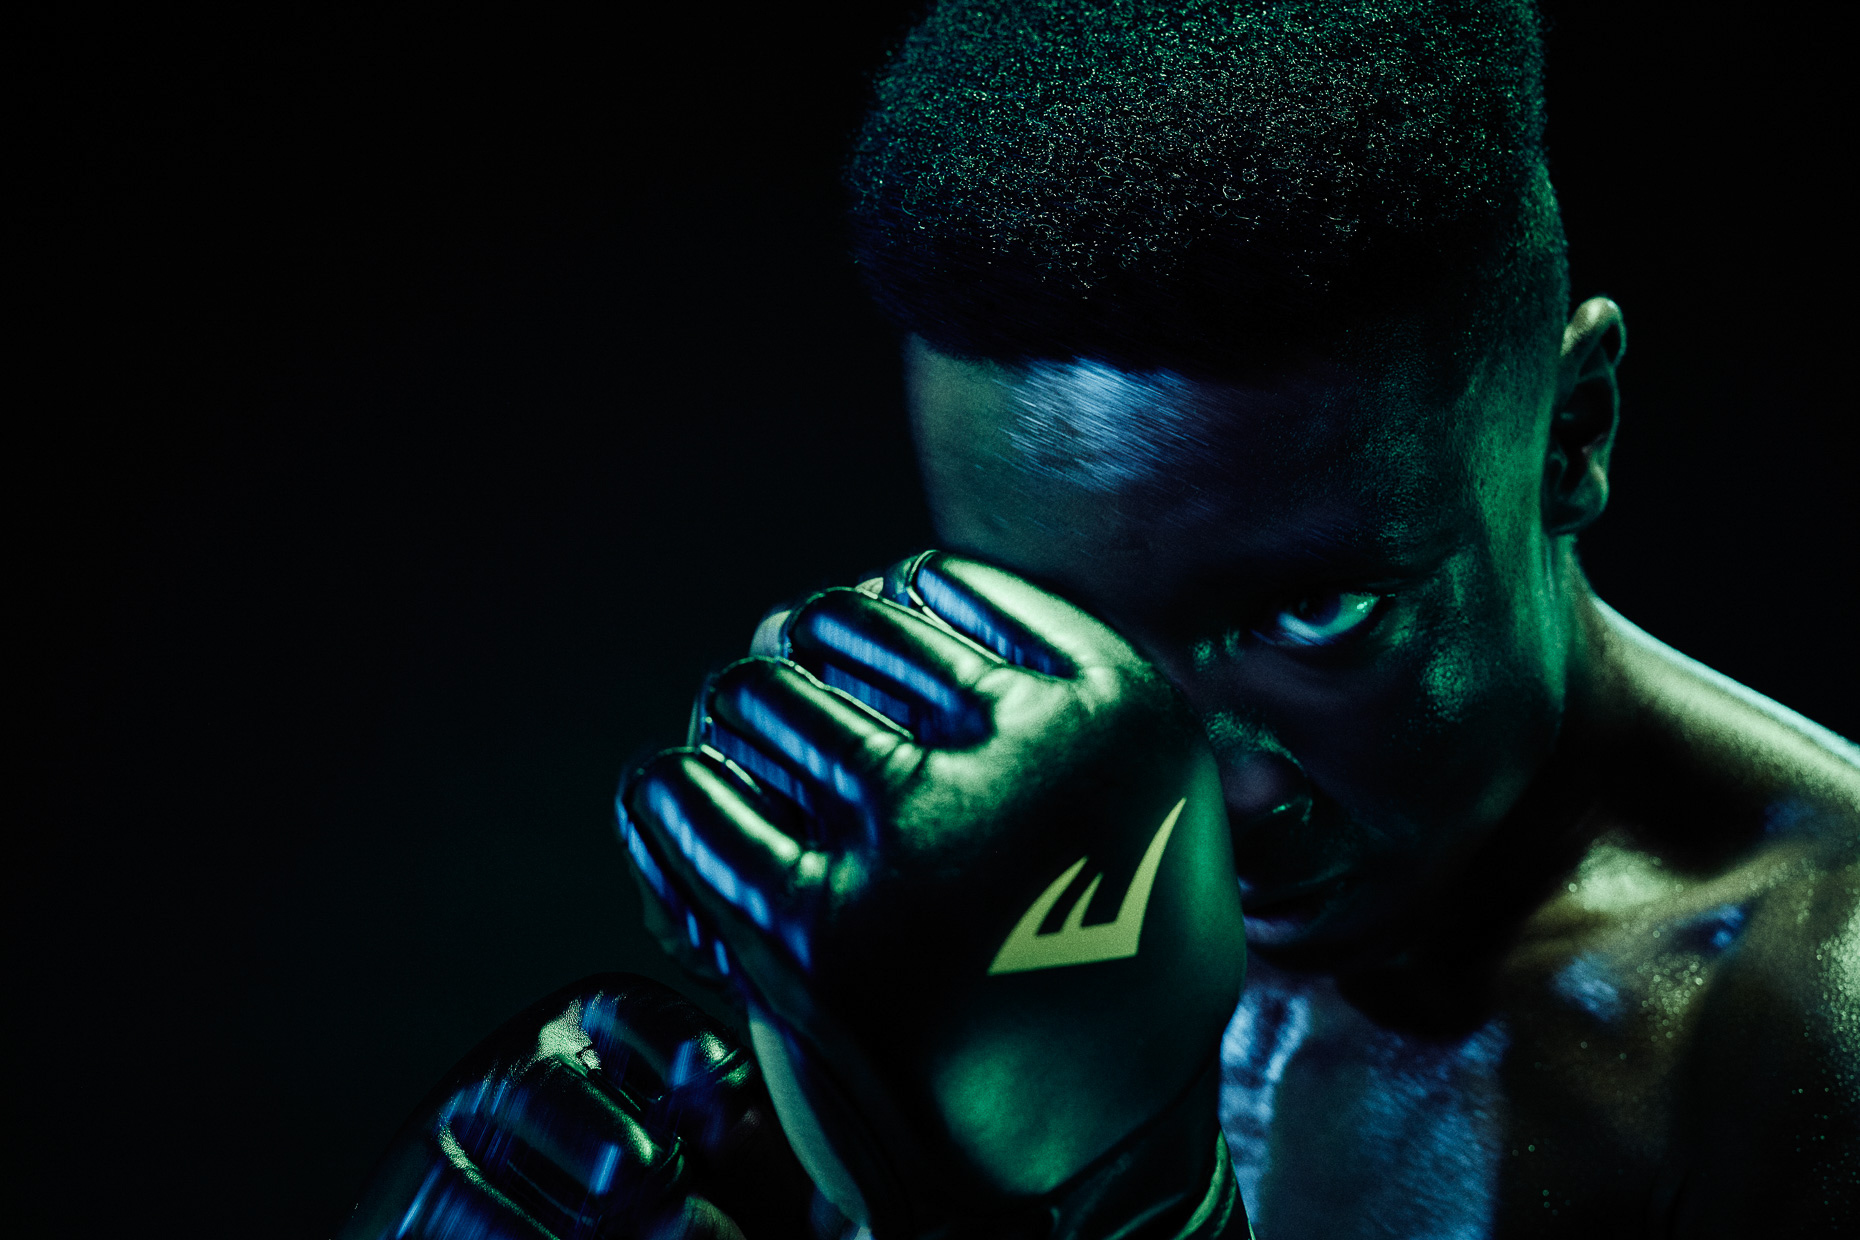 Nike boxing MMA Versace Sonachi guarding his face with boxing gloves in a dark studio lit with green and blue gels by Andy Batt